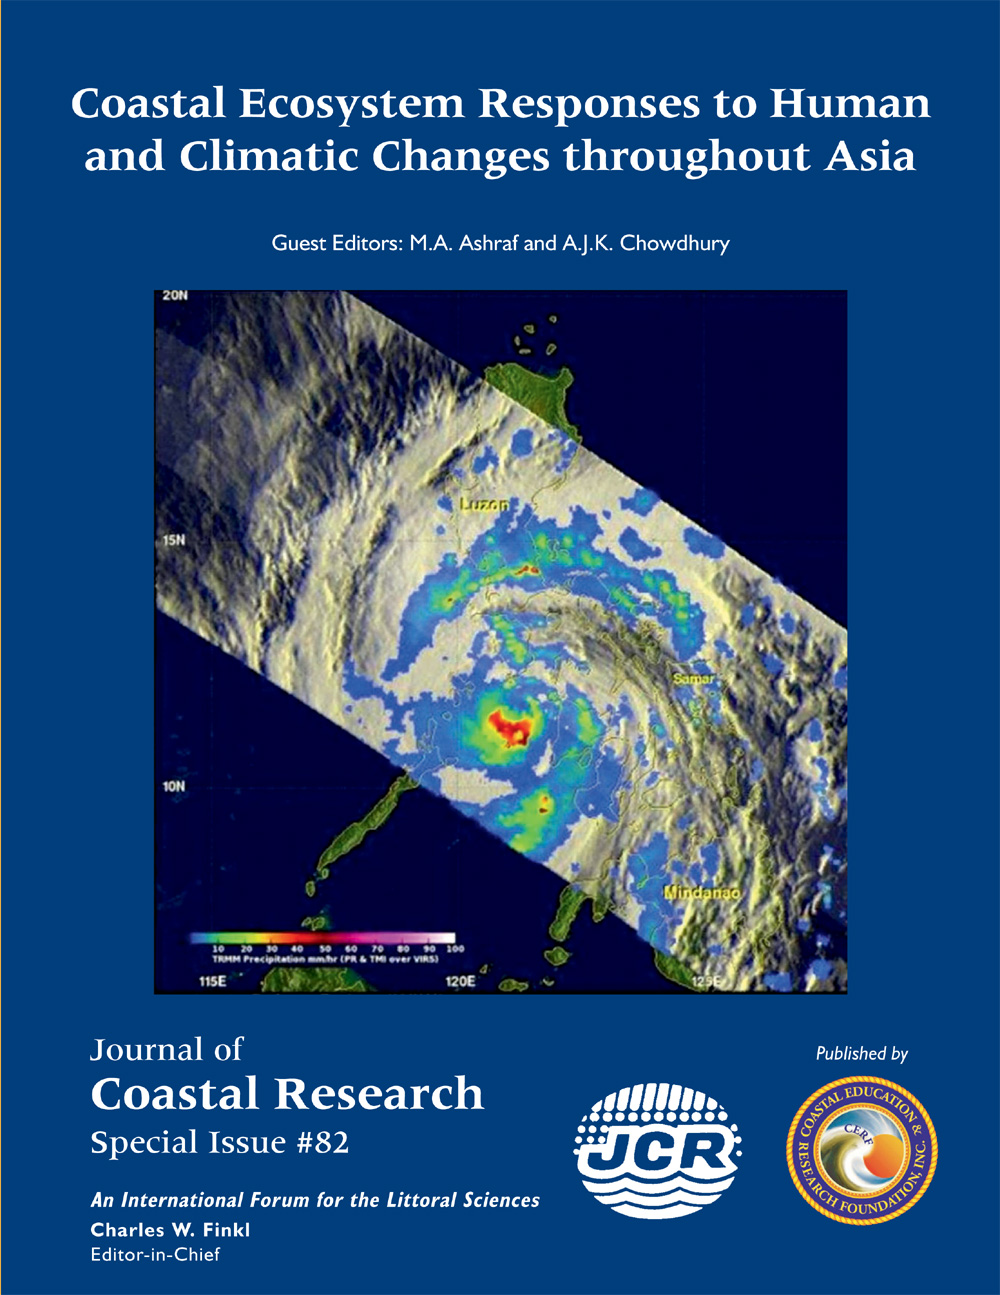 #82 Coastal Ecosystem Responses to Human and Climatic Changes throughout Asia